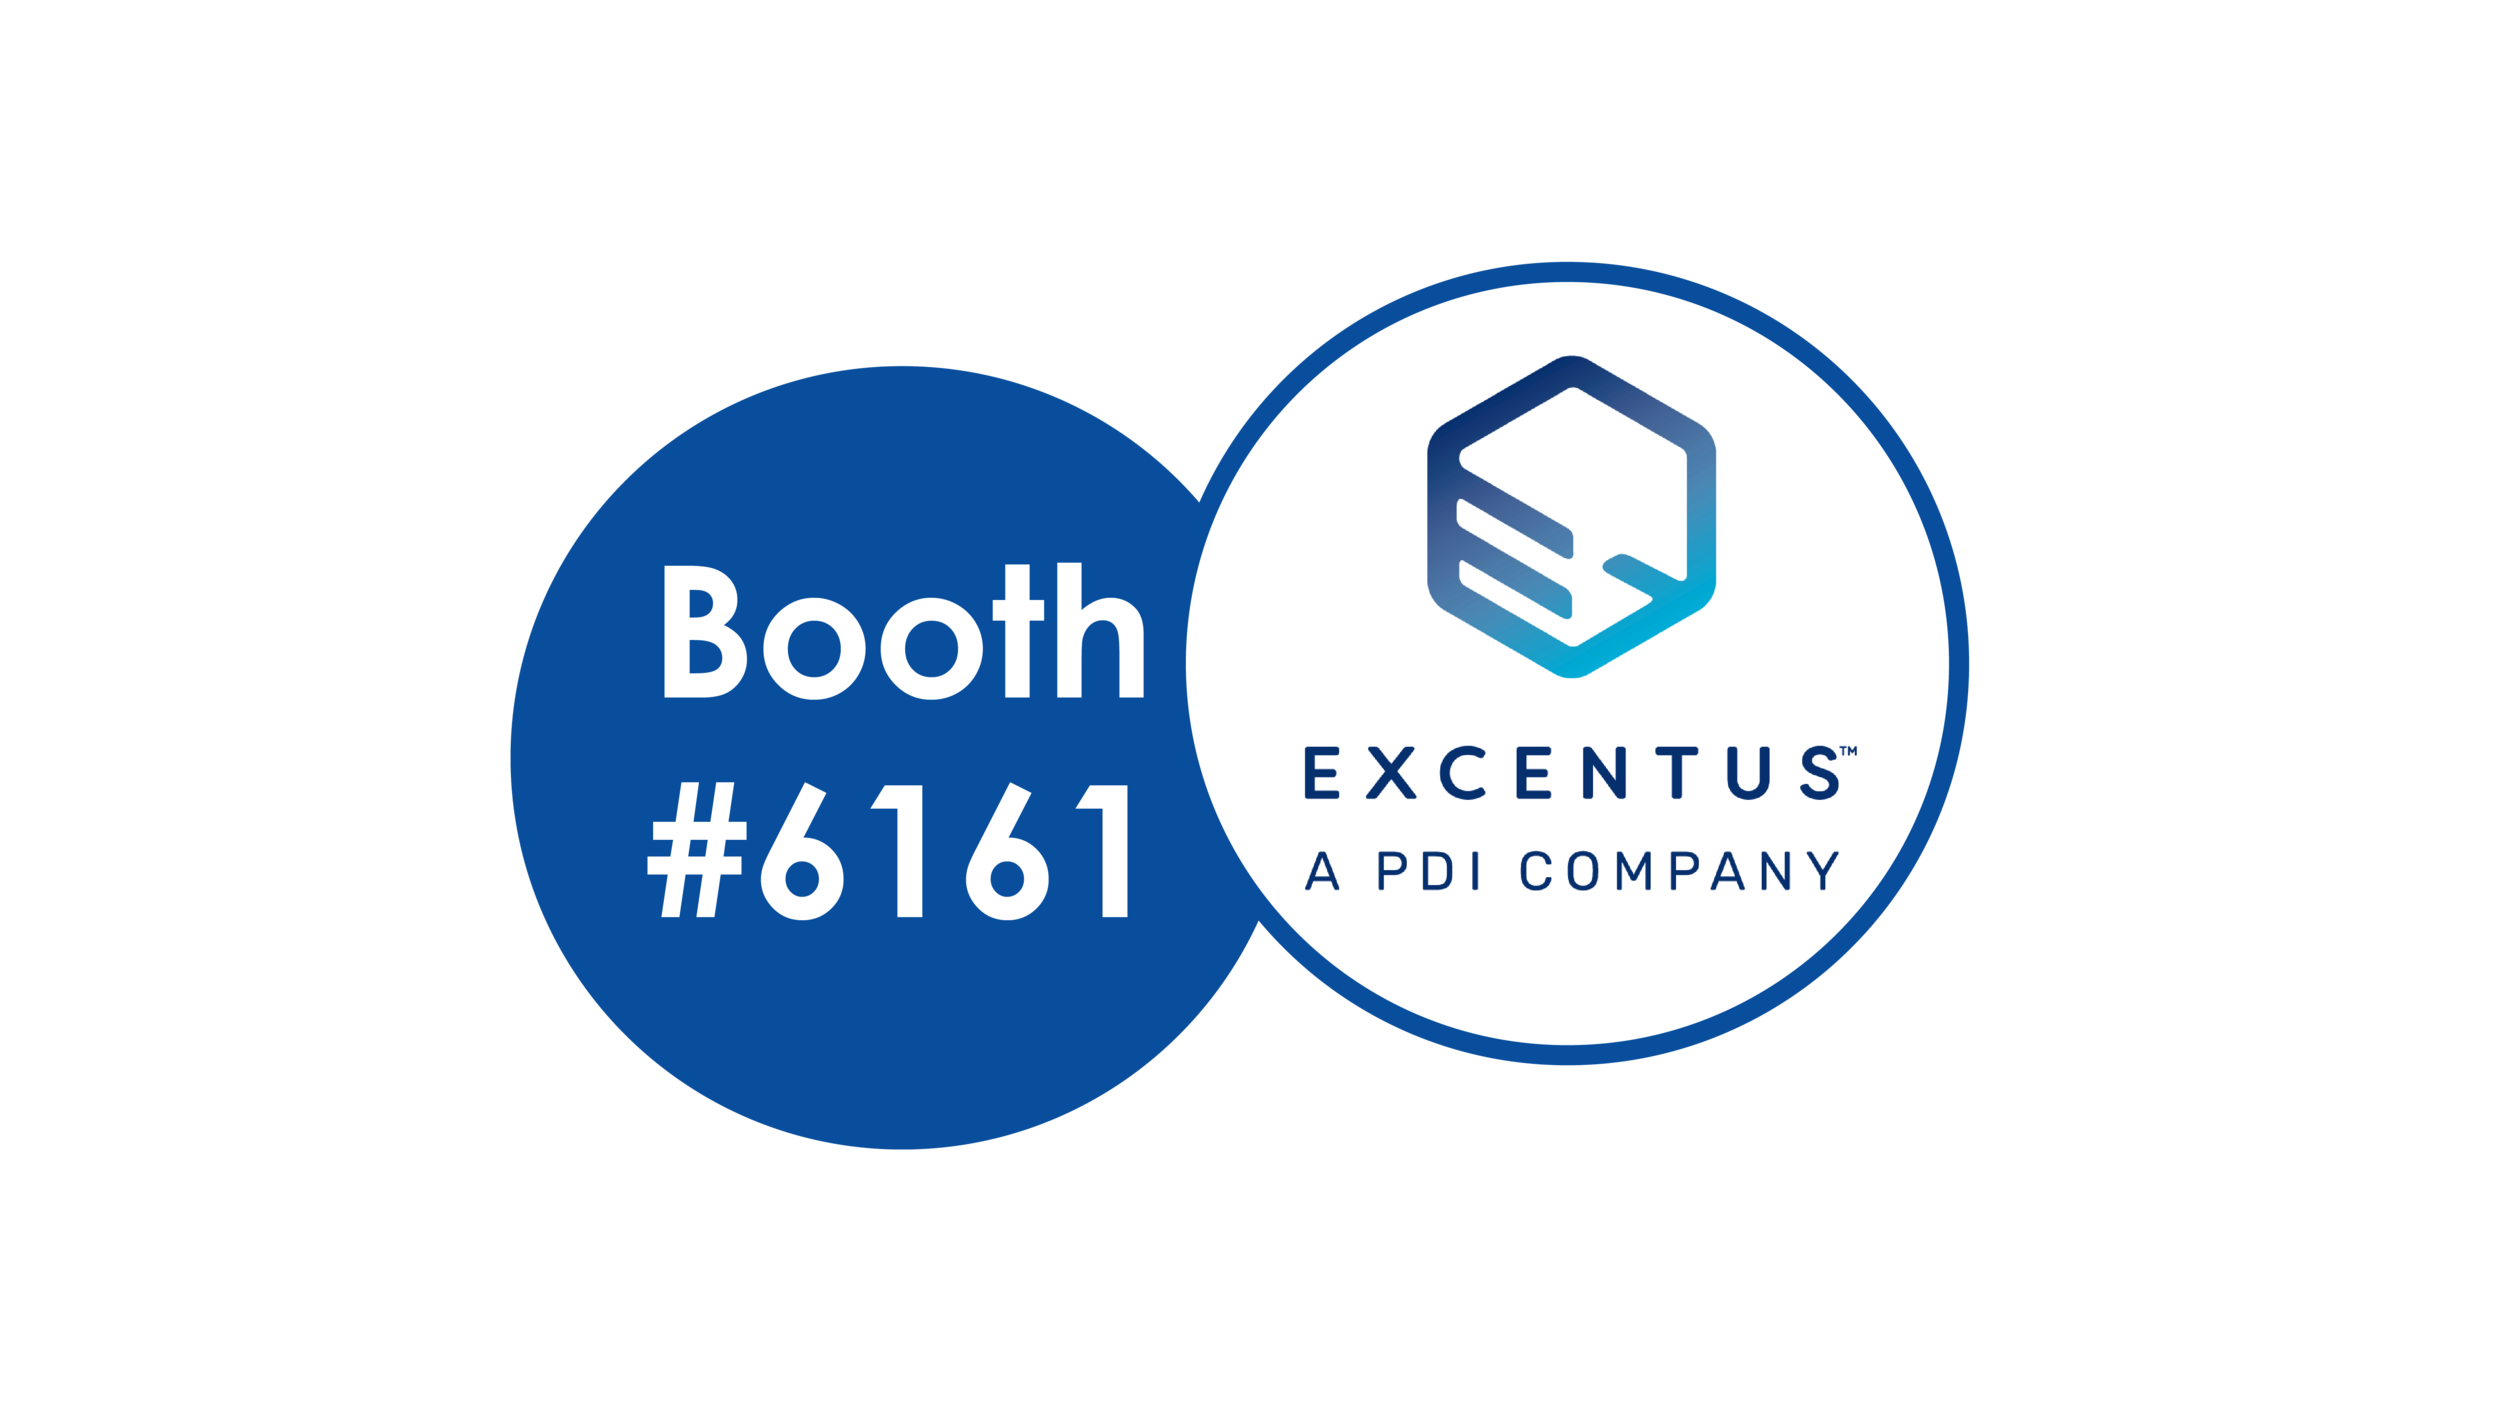 Acquisition Booth Photos_Excentus[1].png